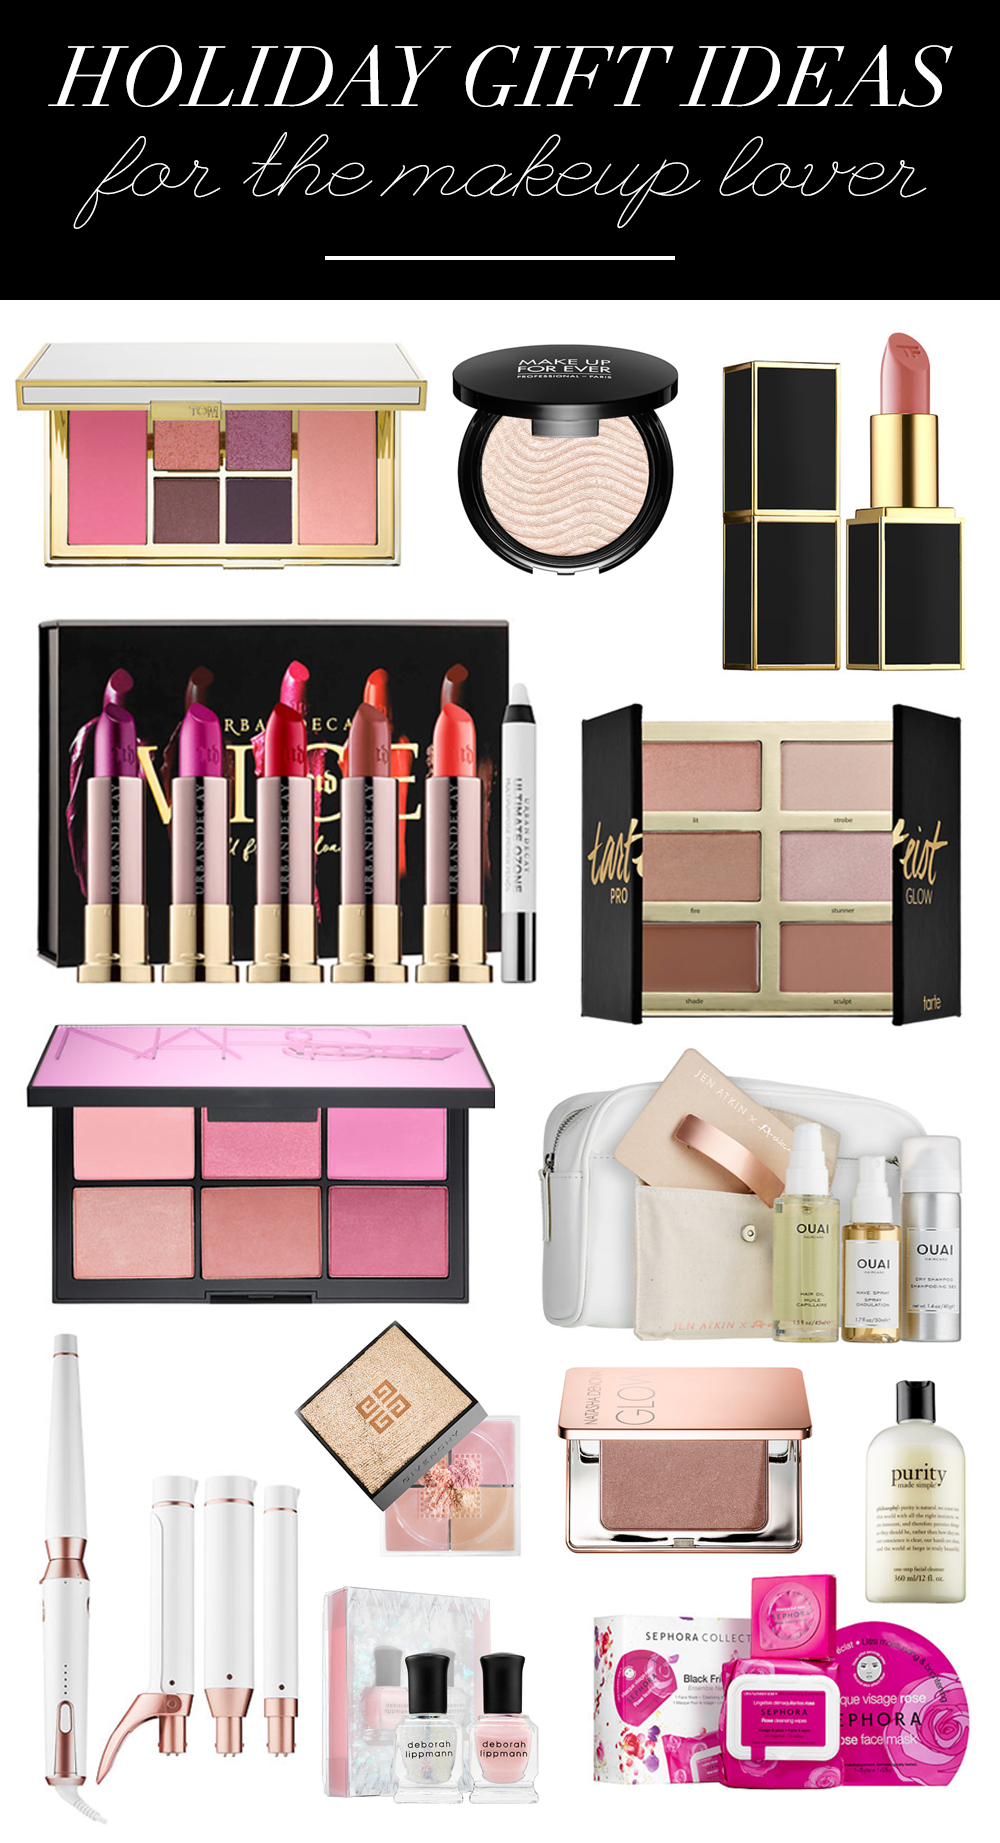 Sephora Gift Guide Teresa Caruso Beauty Products Gifts Gifts For Makeup Lovers Makeup Christmas Gifts